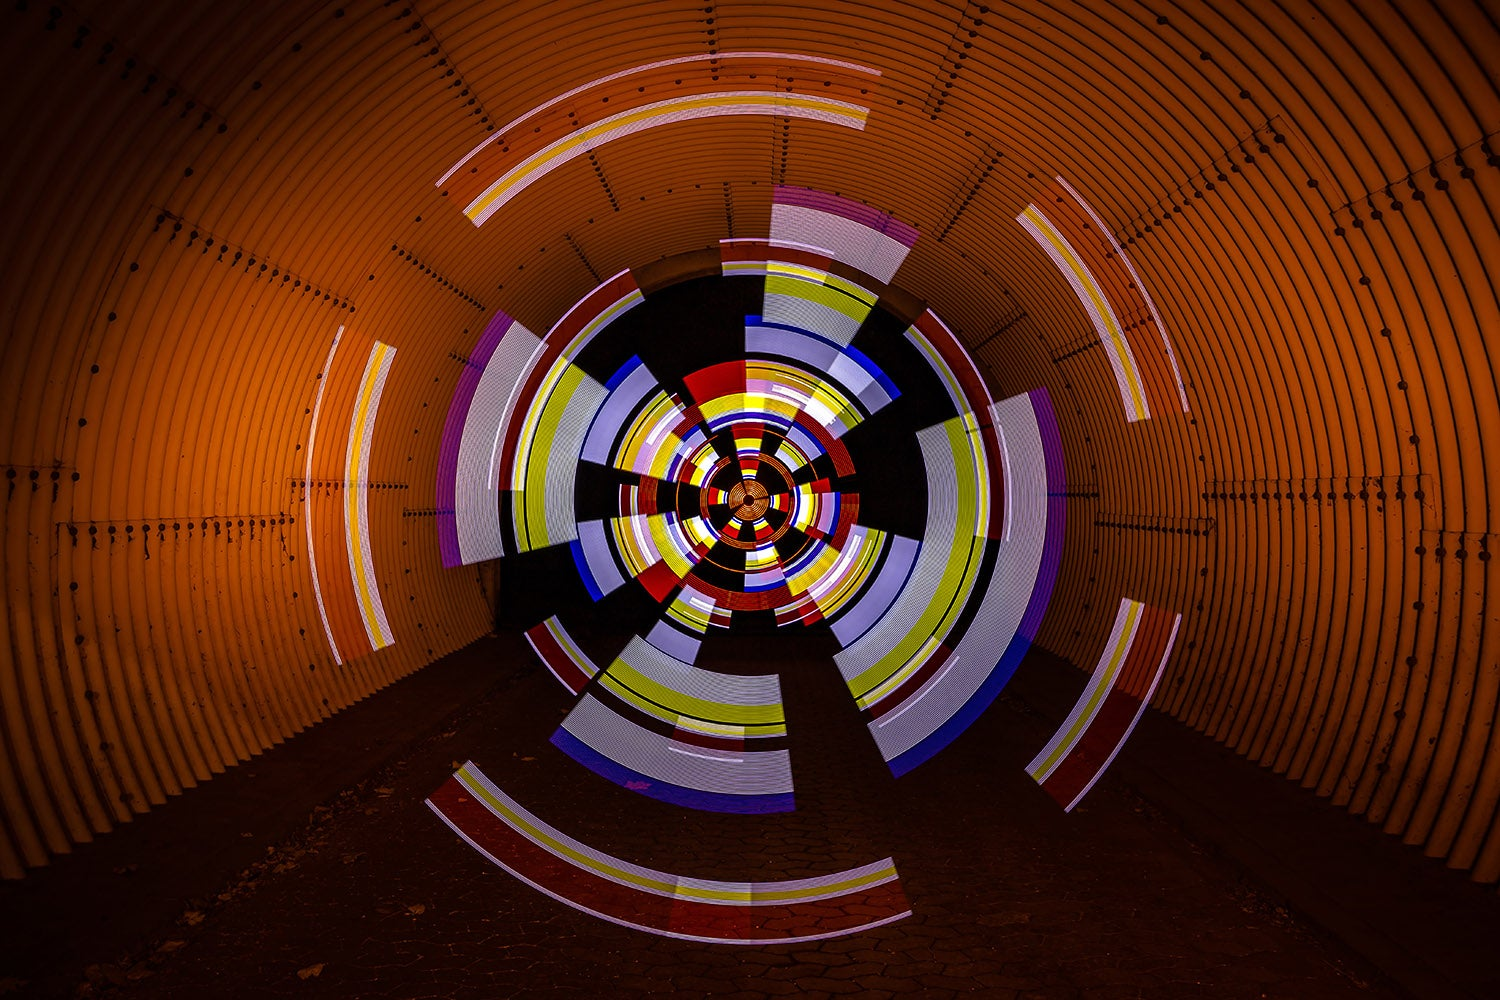 You Can Do It: Create Abstract Light Patterns In Photos Using LEDs